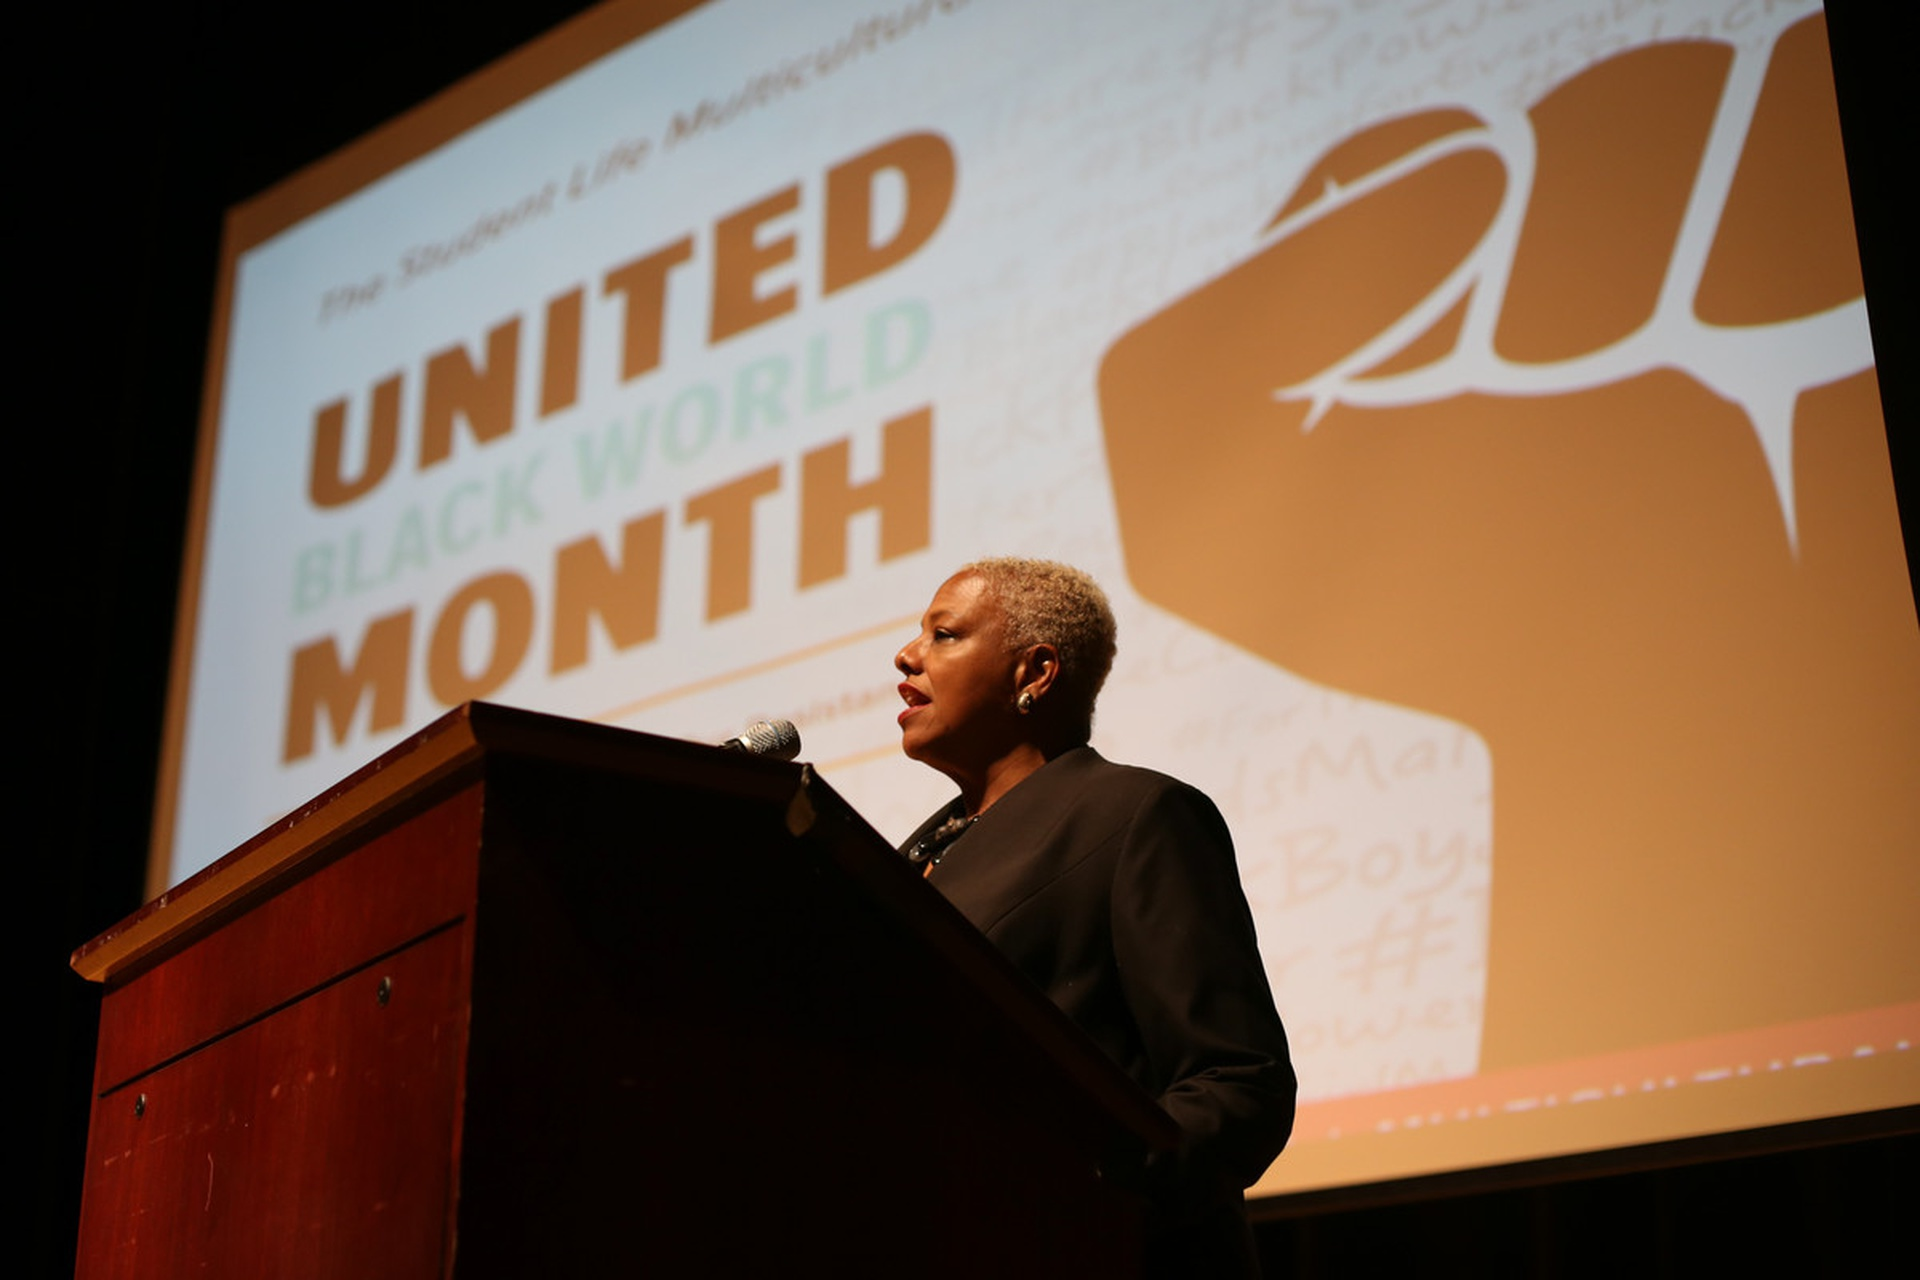 Javaune Adams-Gaston opens United Black World Month. Photo: Joshua Farr